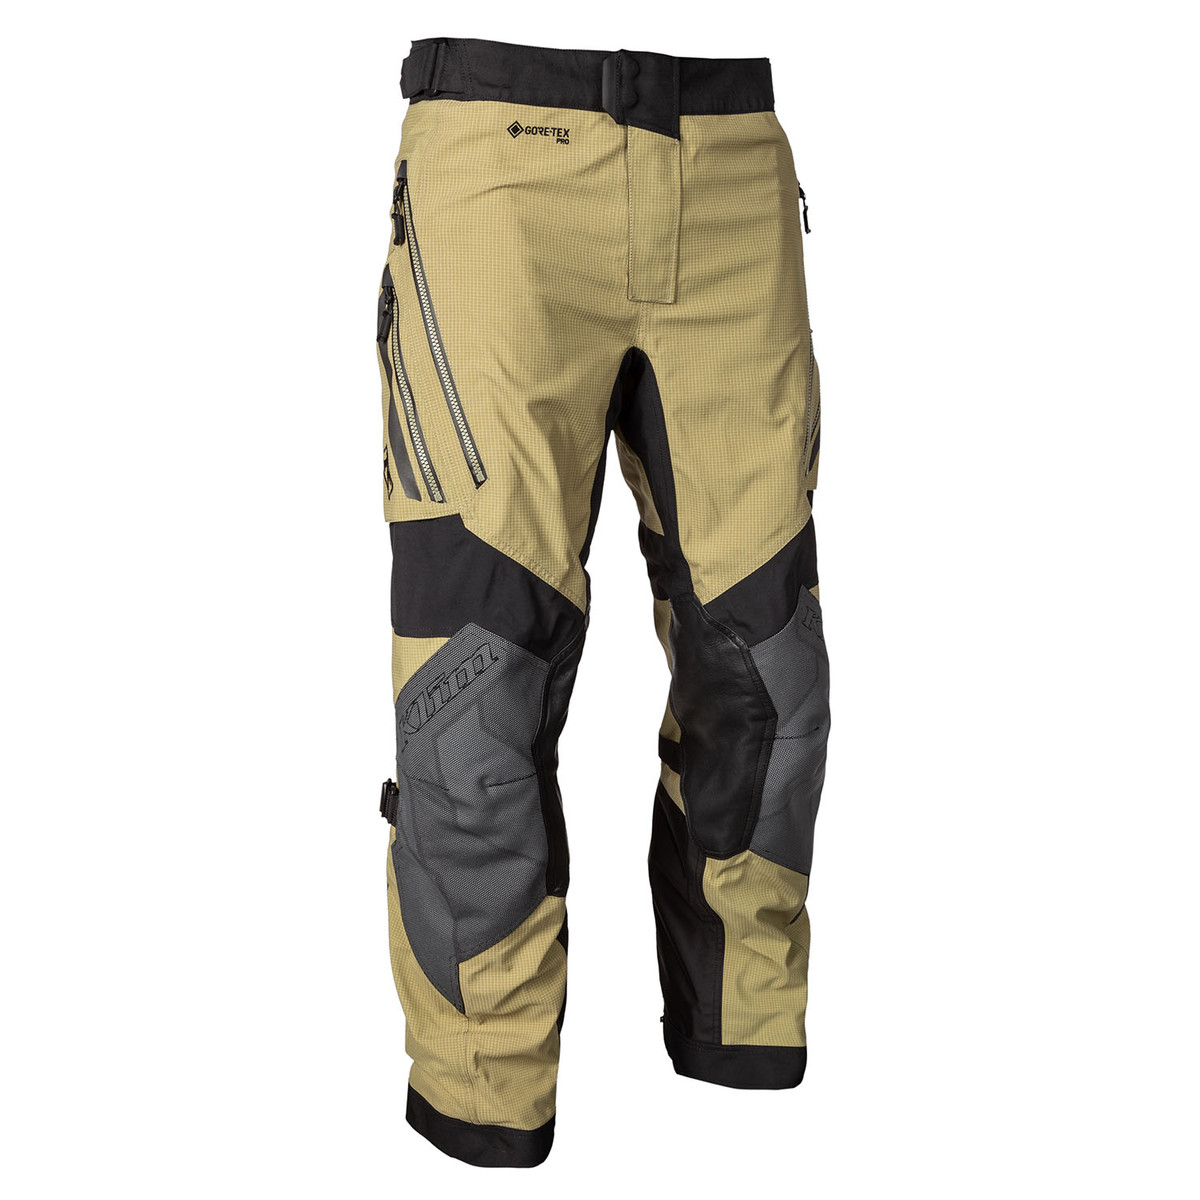 Badlands Pro A3 Pant Vectran Sage - Black Back Side